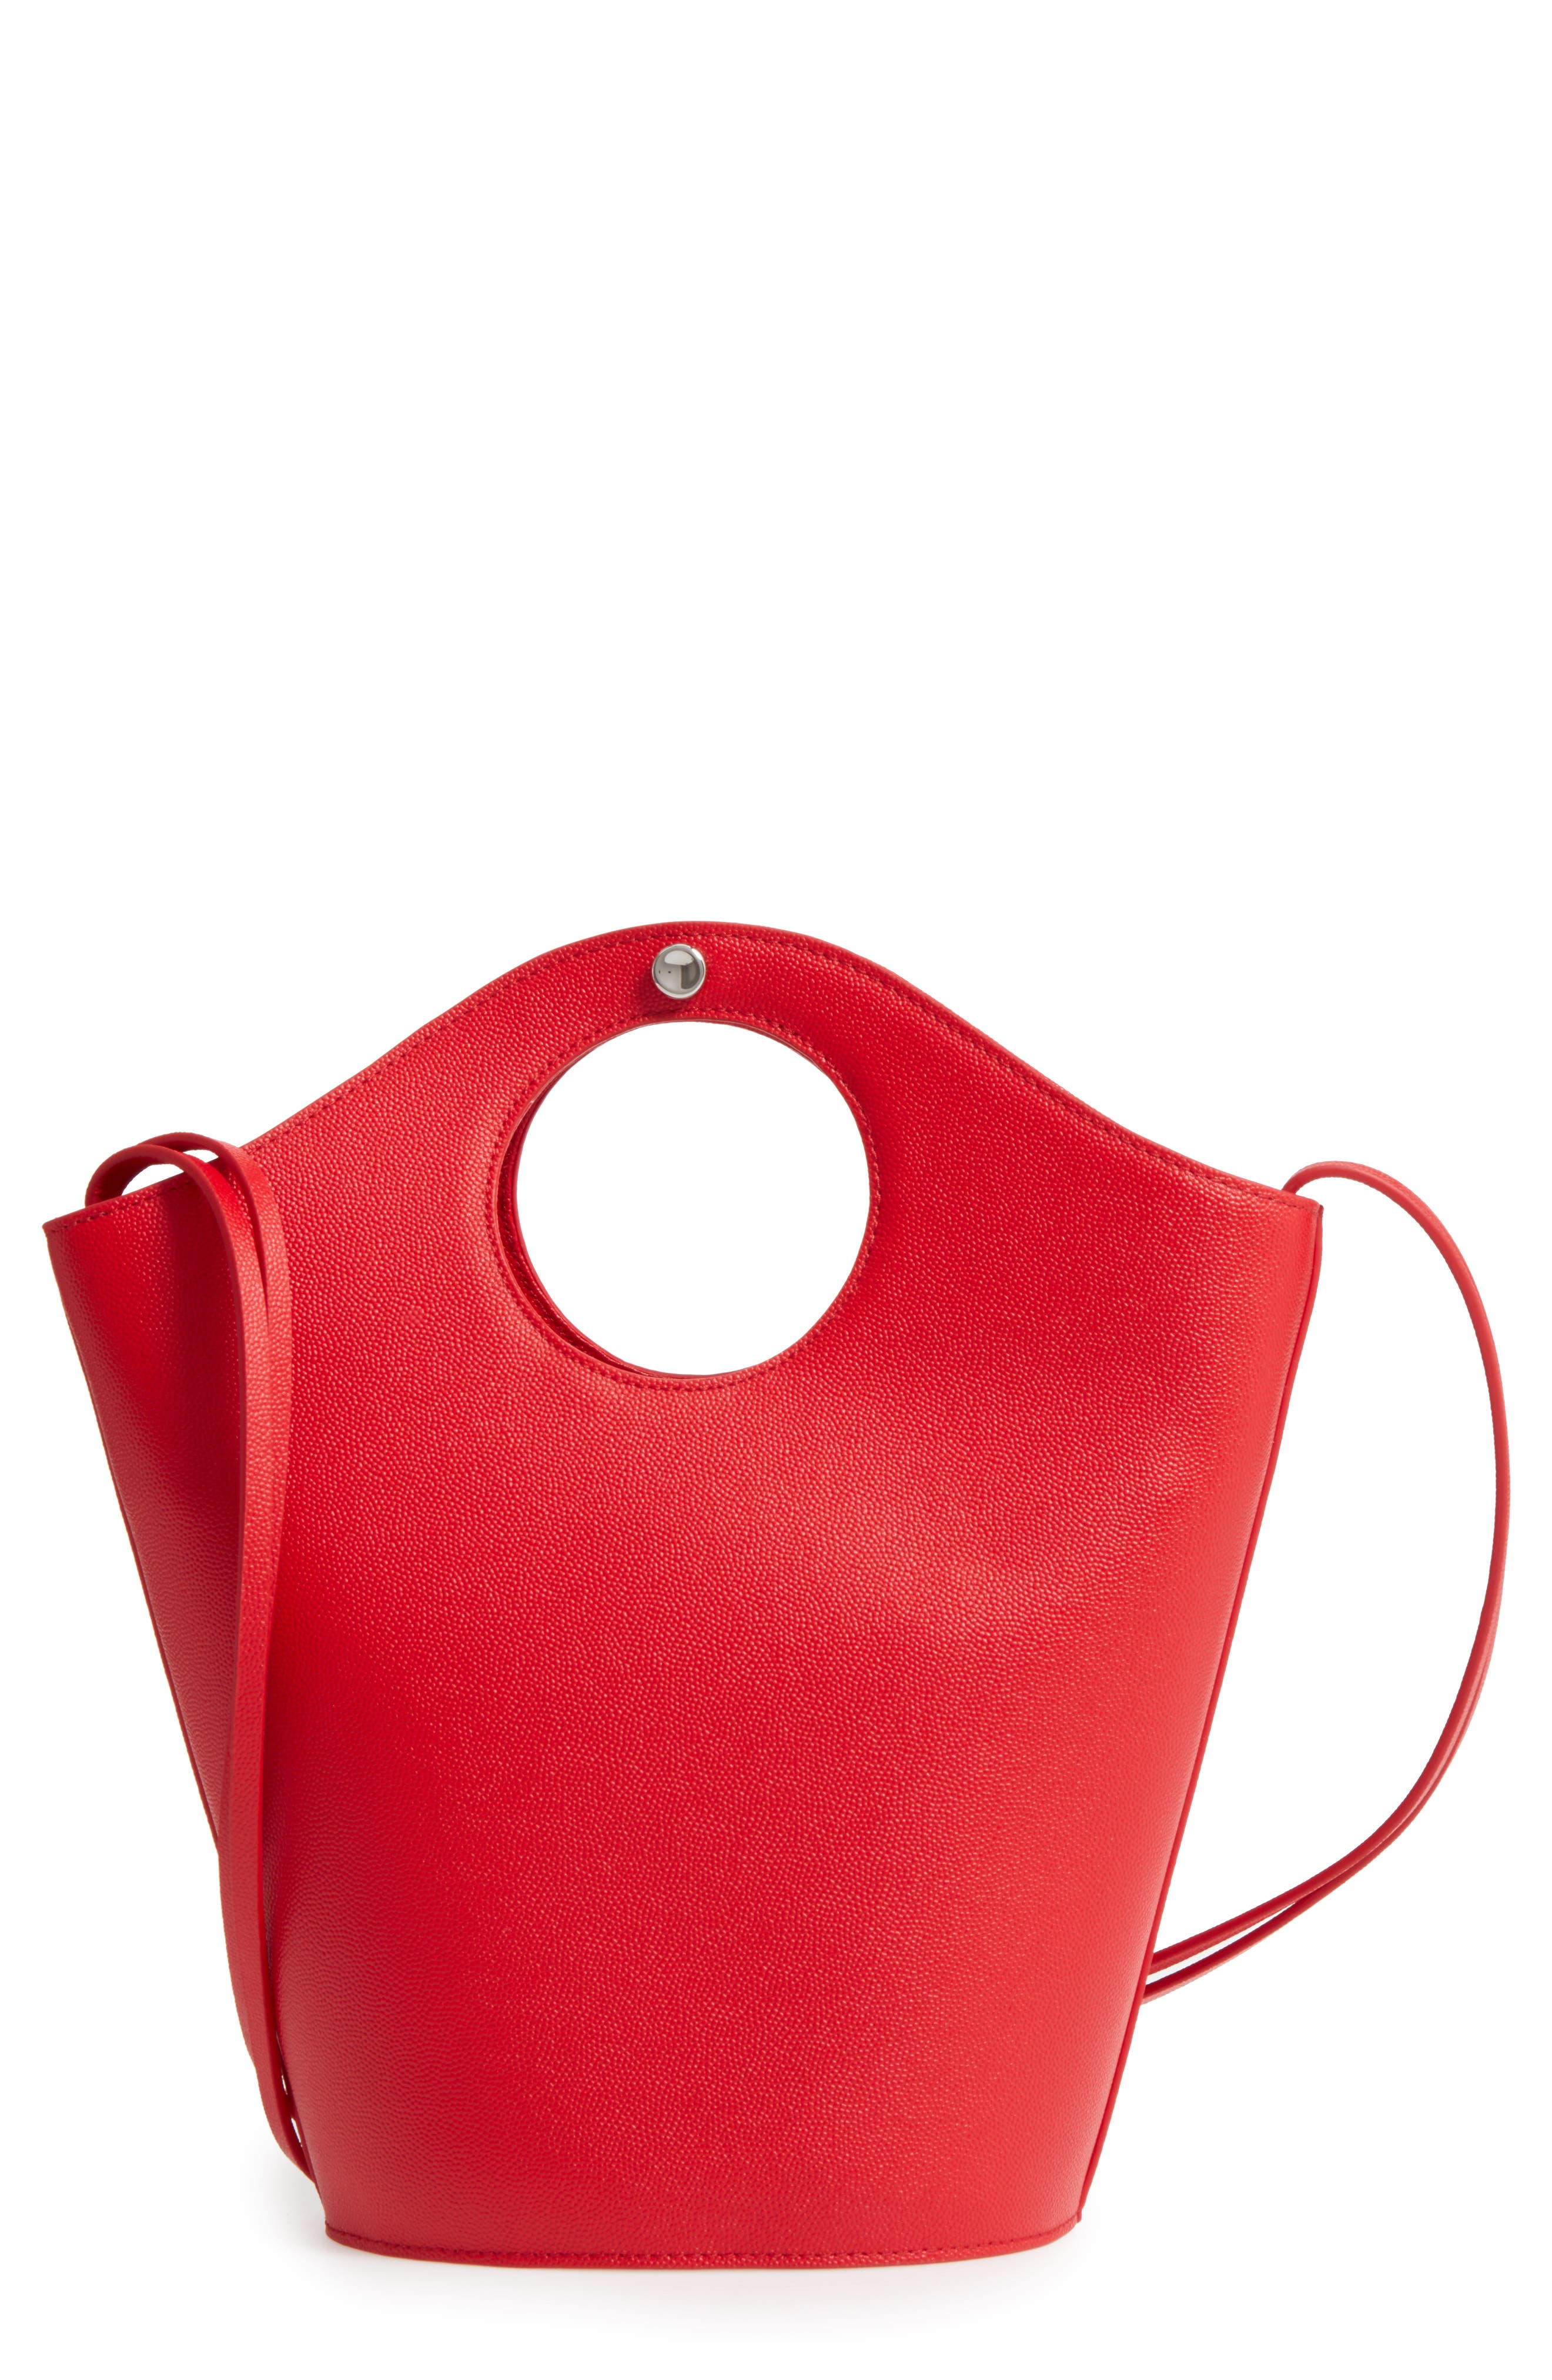 Small Market Leather Shopper,                             Main thumbnail 1, color,                             Red